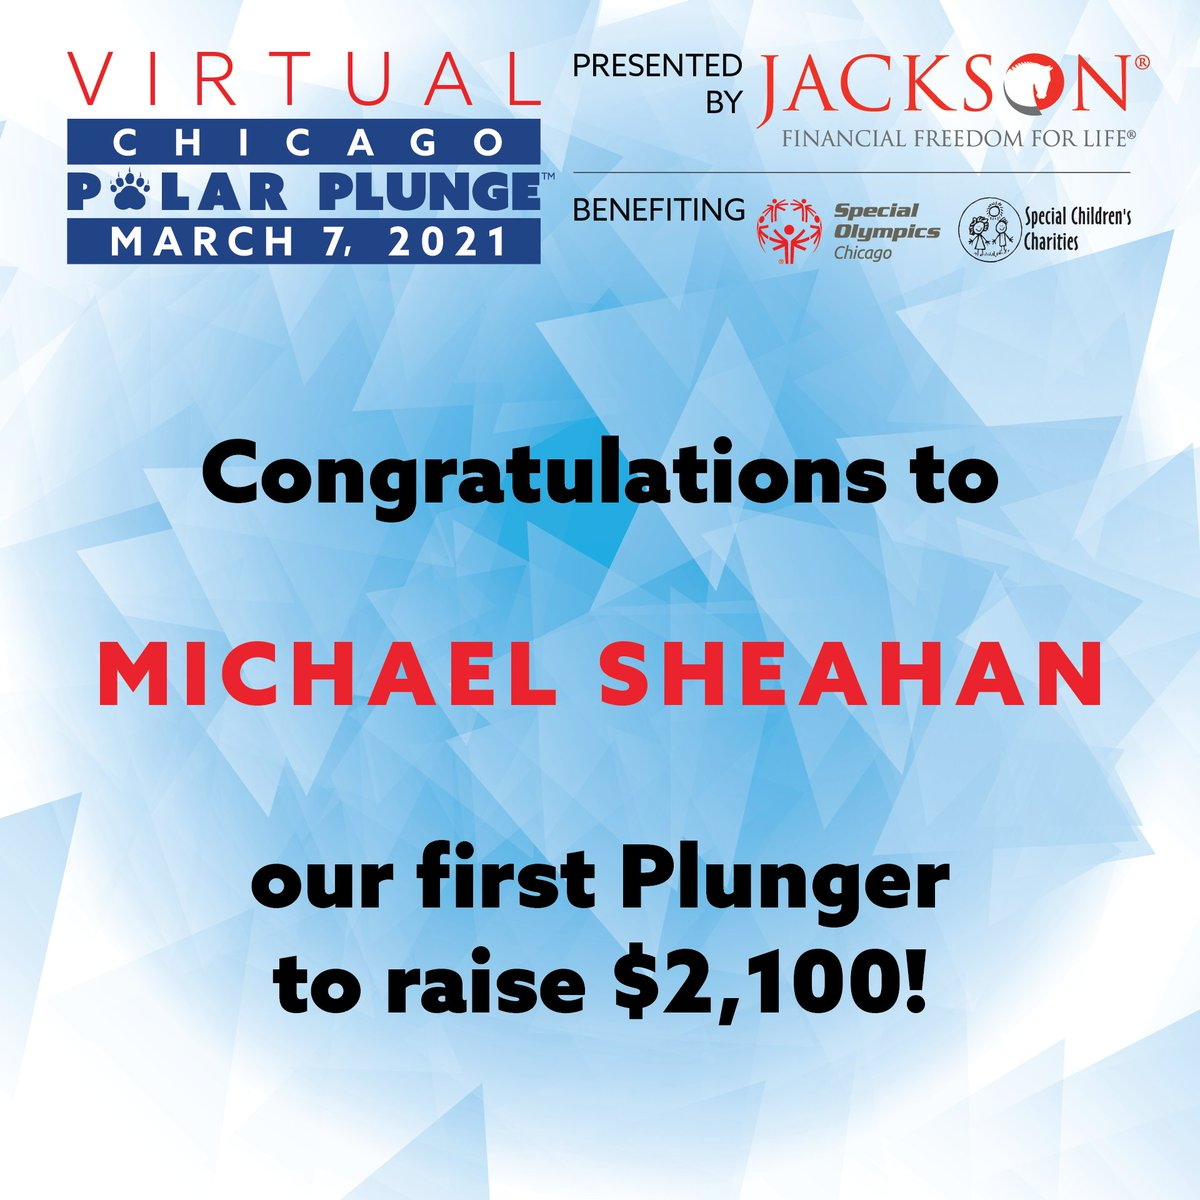 Congratulations to Michael Sheahan, the first person to raise $2100 for the 2021 Virtual Chicago Polar Plunge presented by Jackson! Thank you for working hard to support our athletes!  Sign up today at https://t.co/jCR0lmzAzY https://t.co/ajnmyewrP2